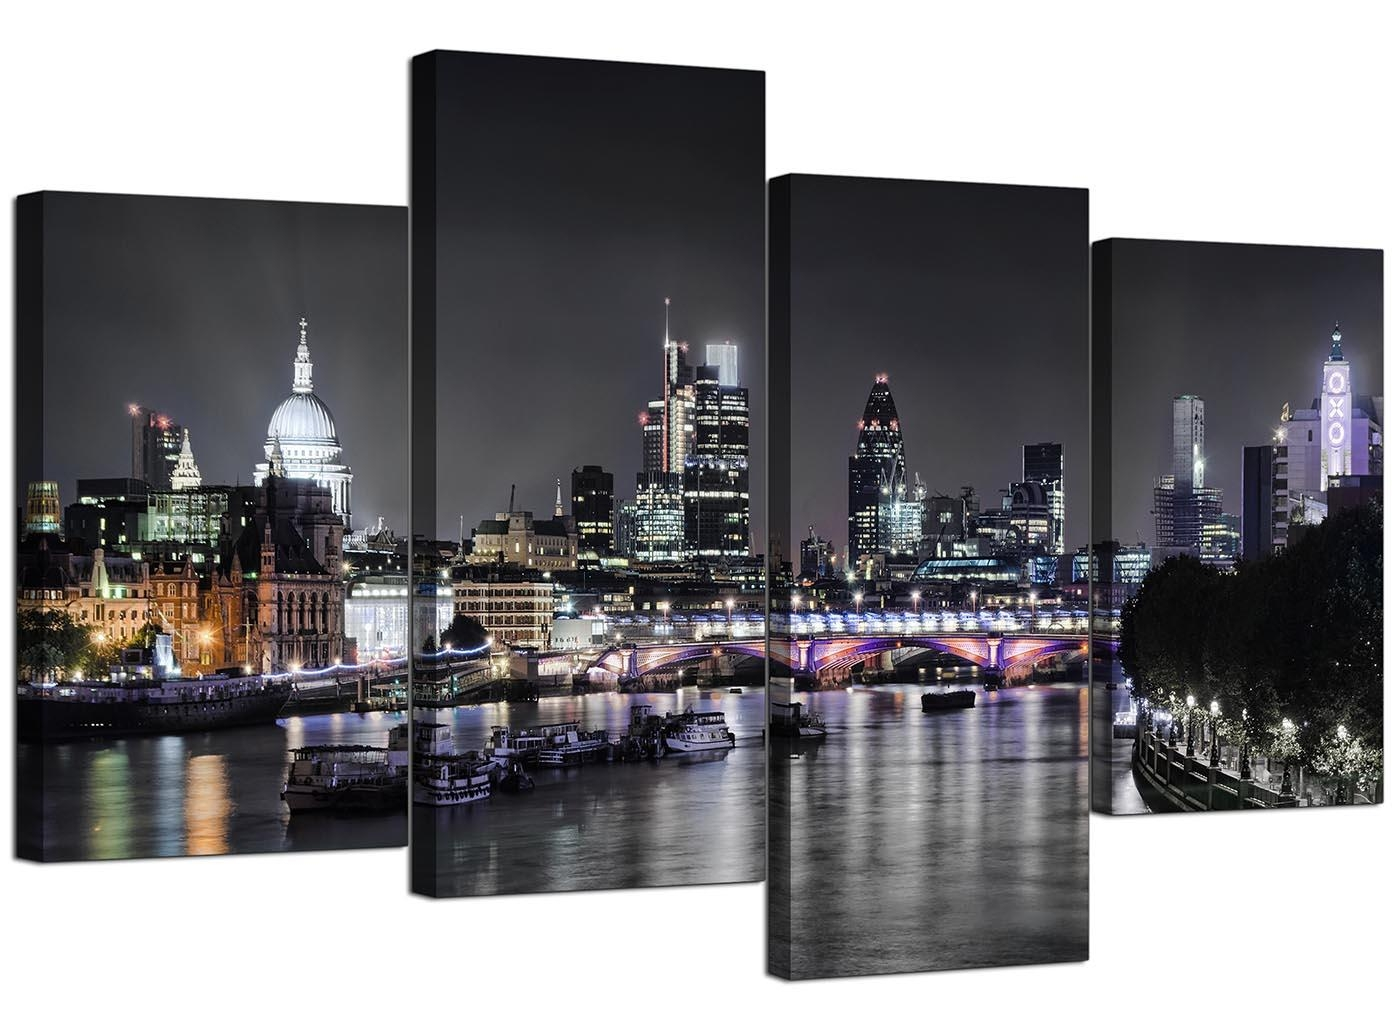 Canvas Wall Art Of London Skyline For Your Living Room – 4 Panel Pertaining To Cityscape Canvas Wall Art (View 2 of 20)